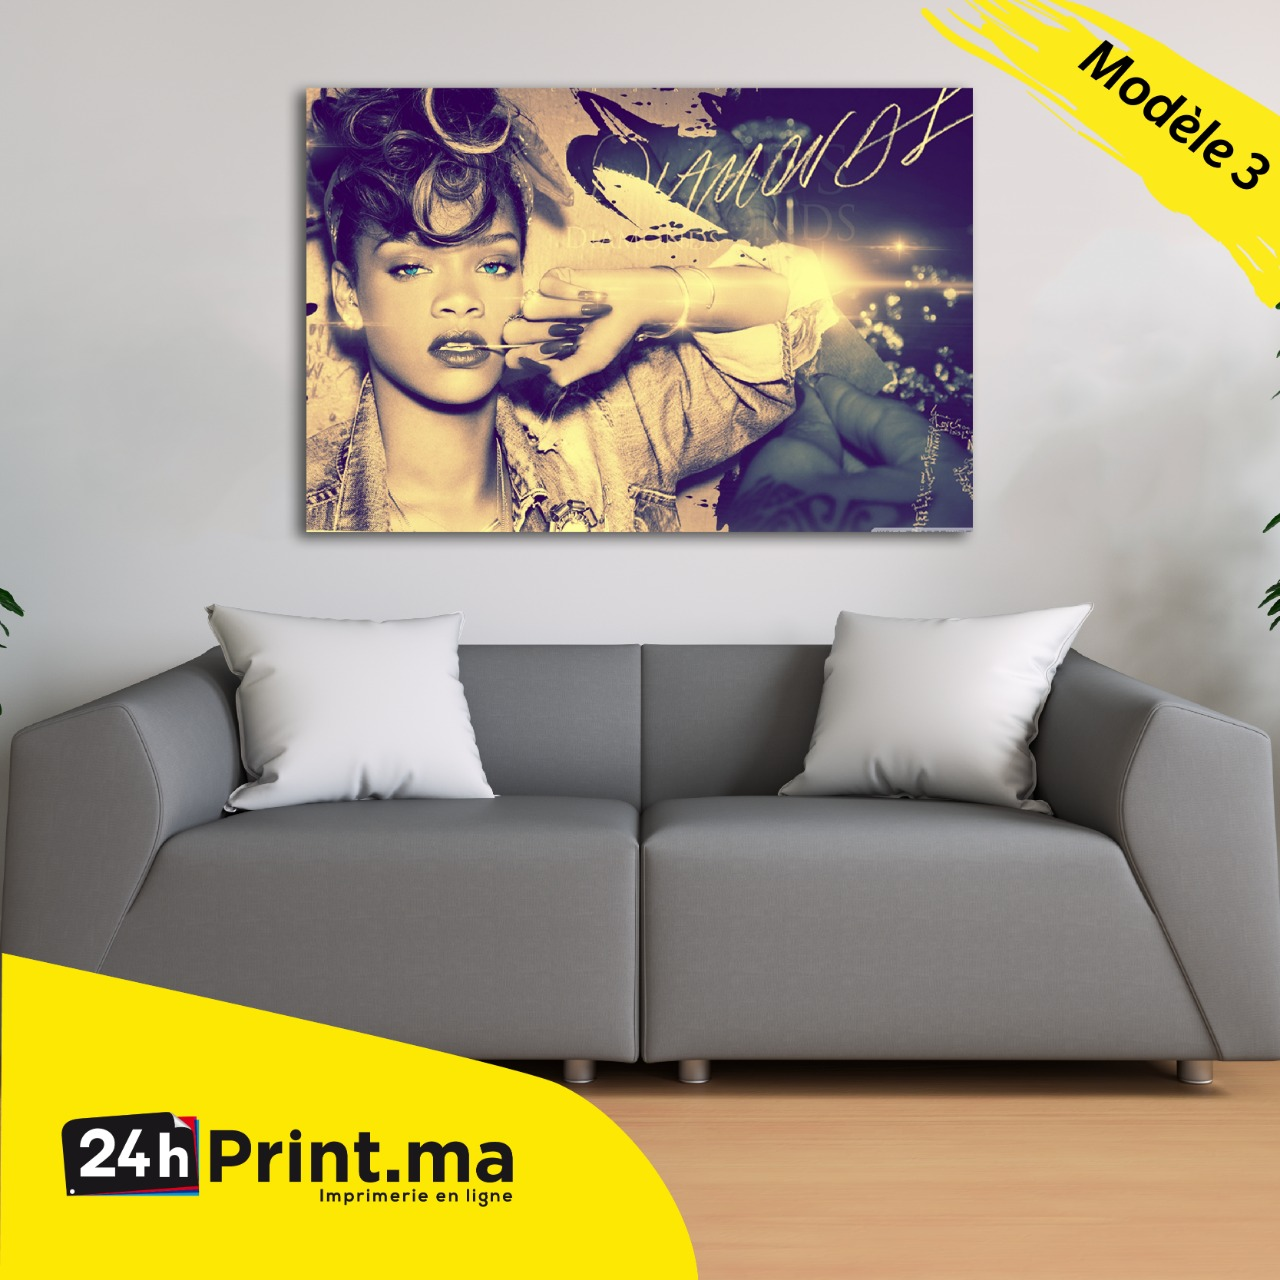 https://www.24hprint.ma/images/products_gallery_images/324.jpeg